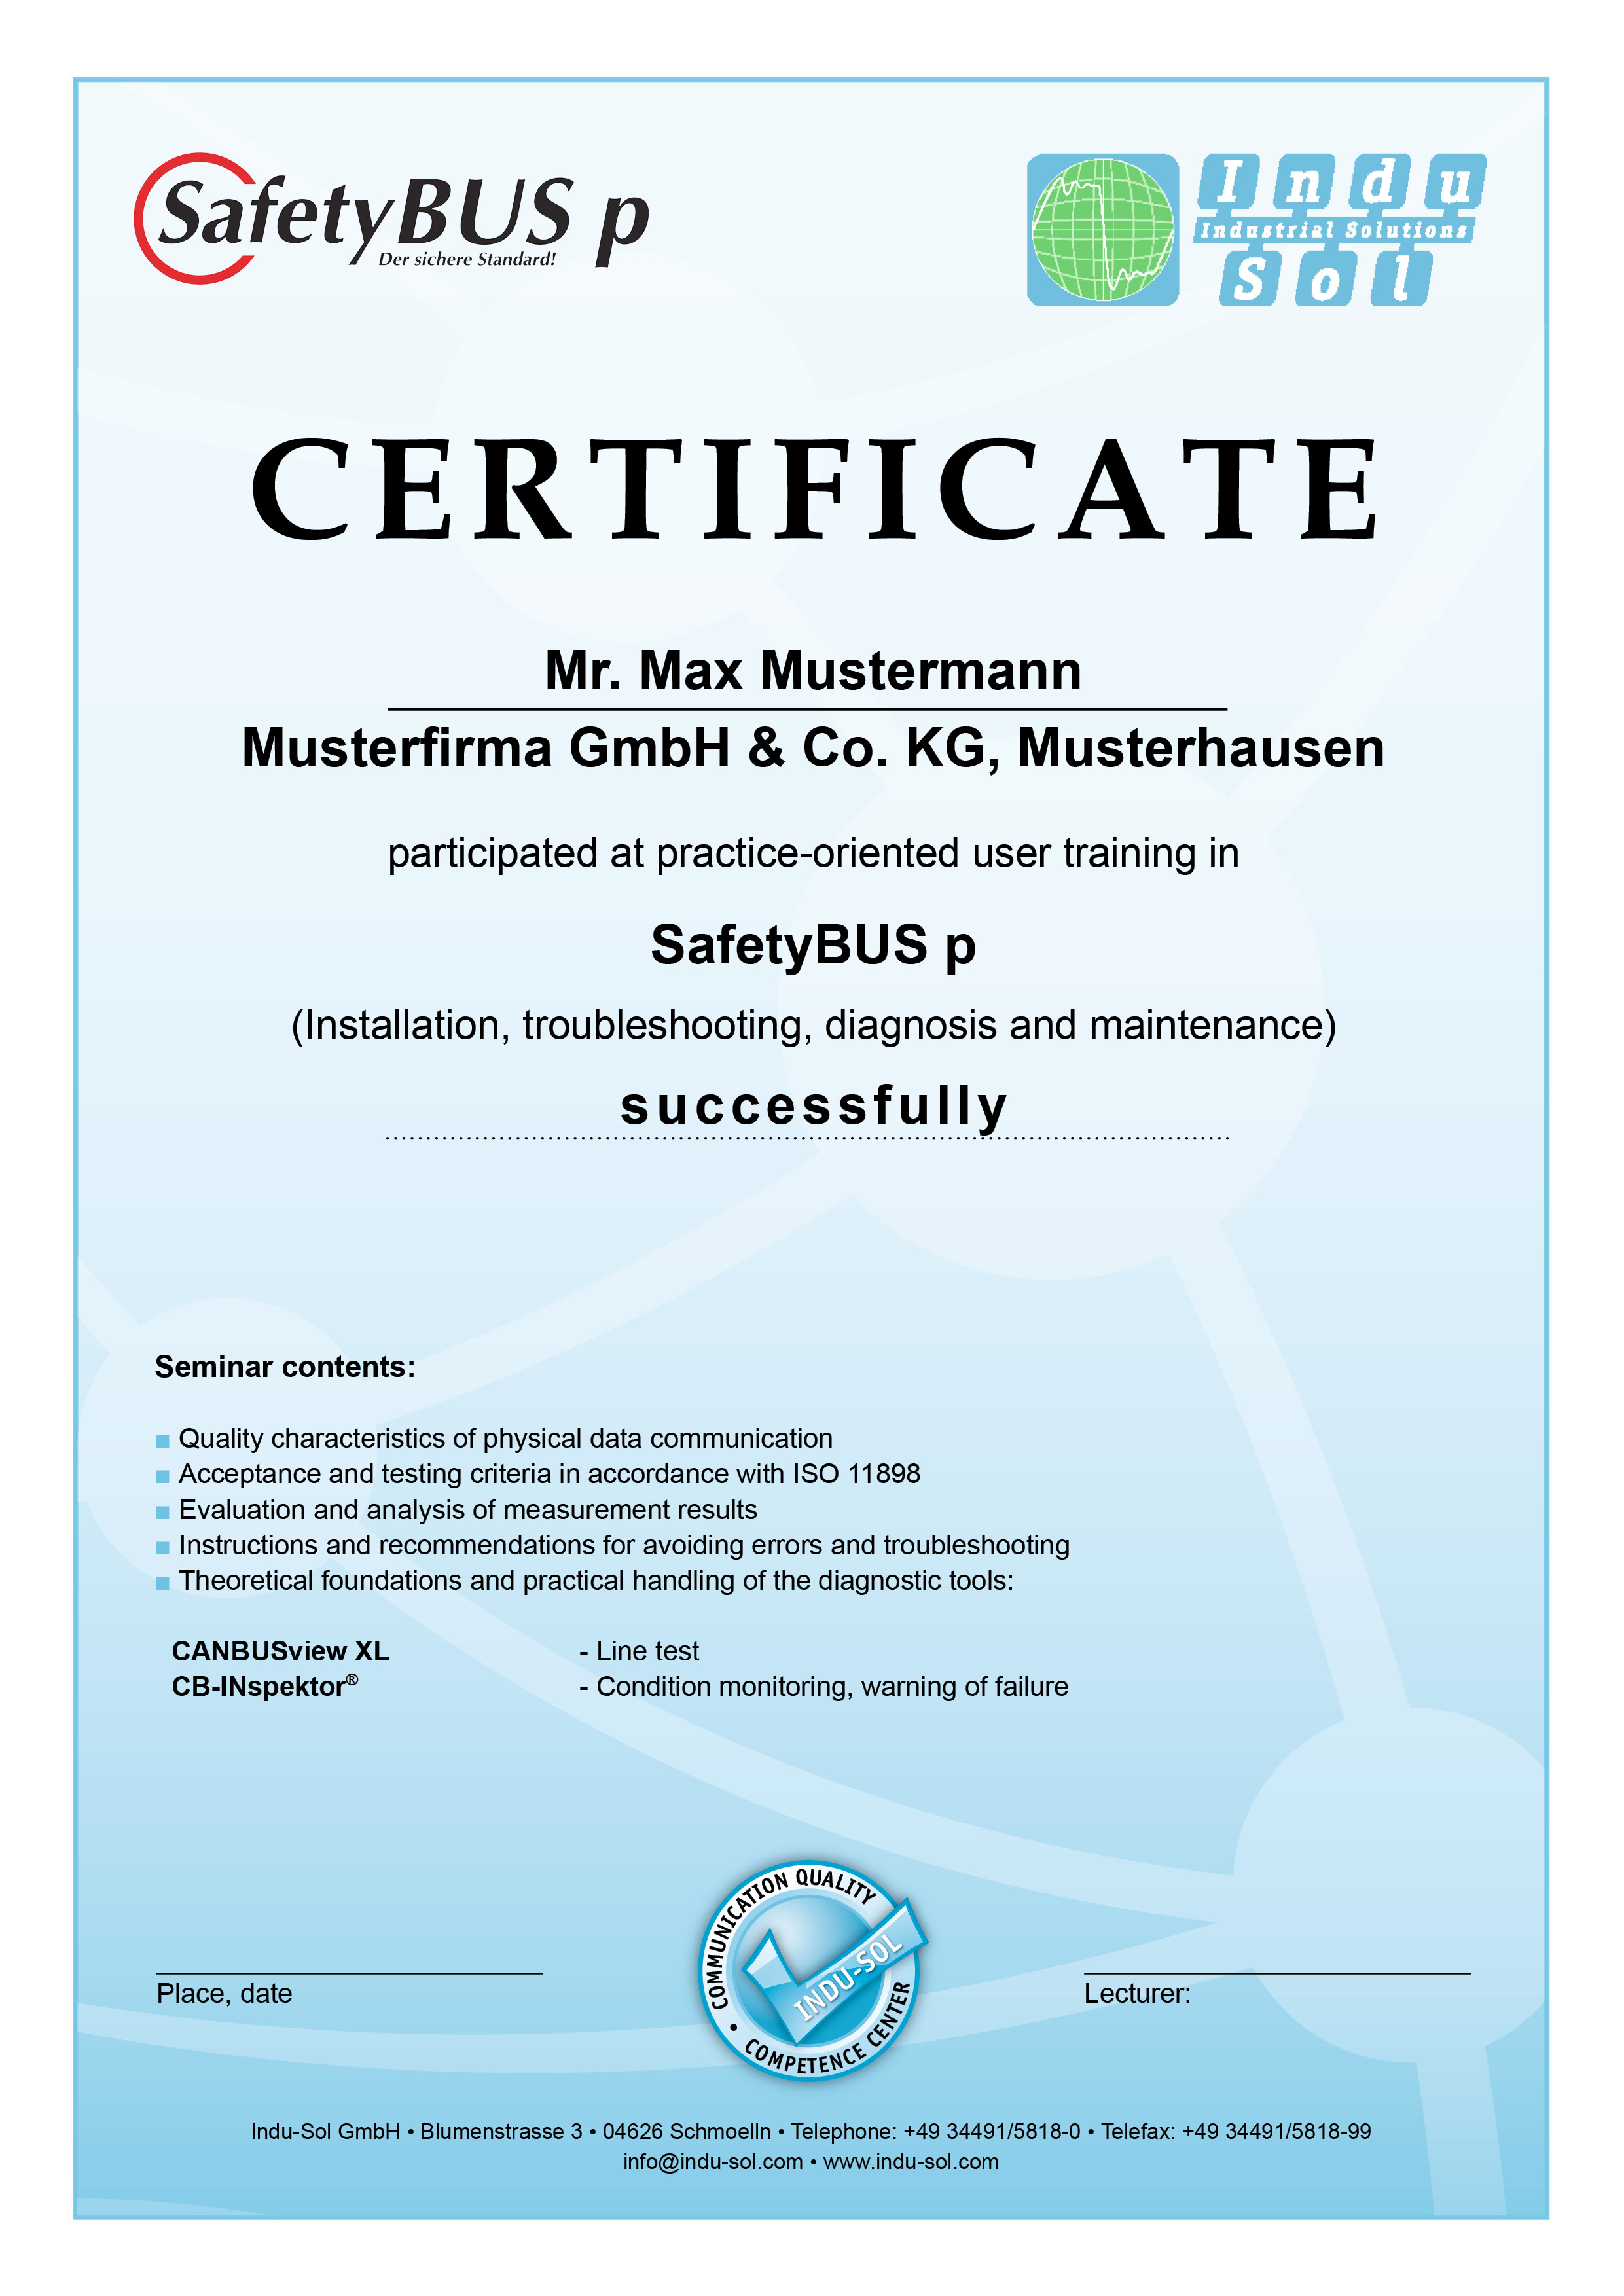 SafetyBUS p Training certificate